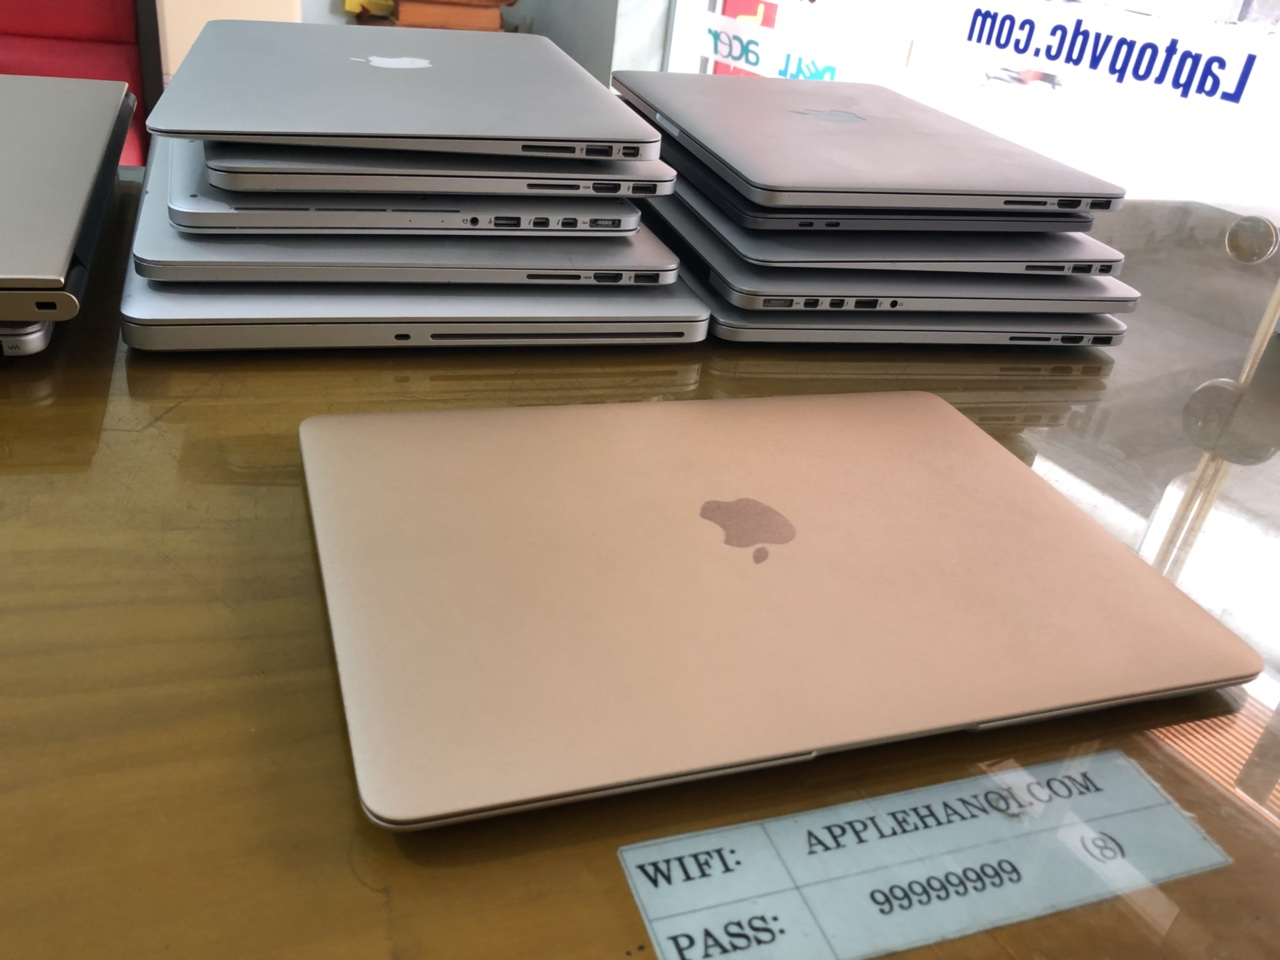 Macbook Air Retina MF855